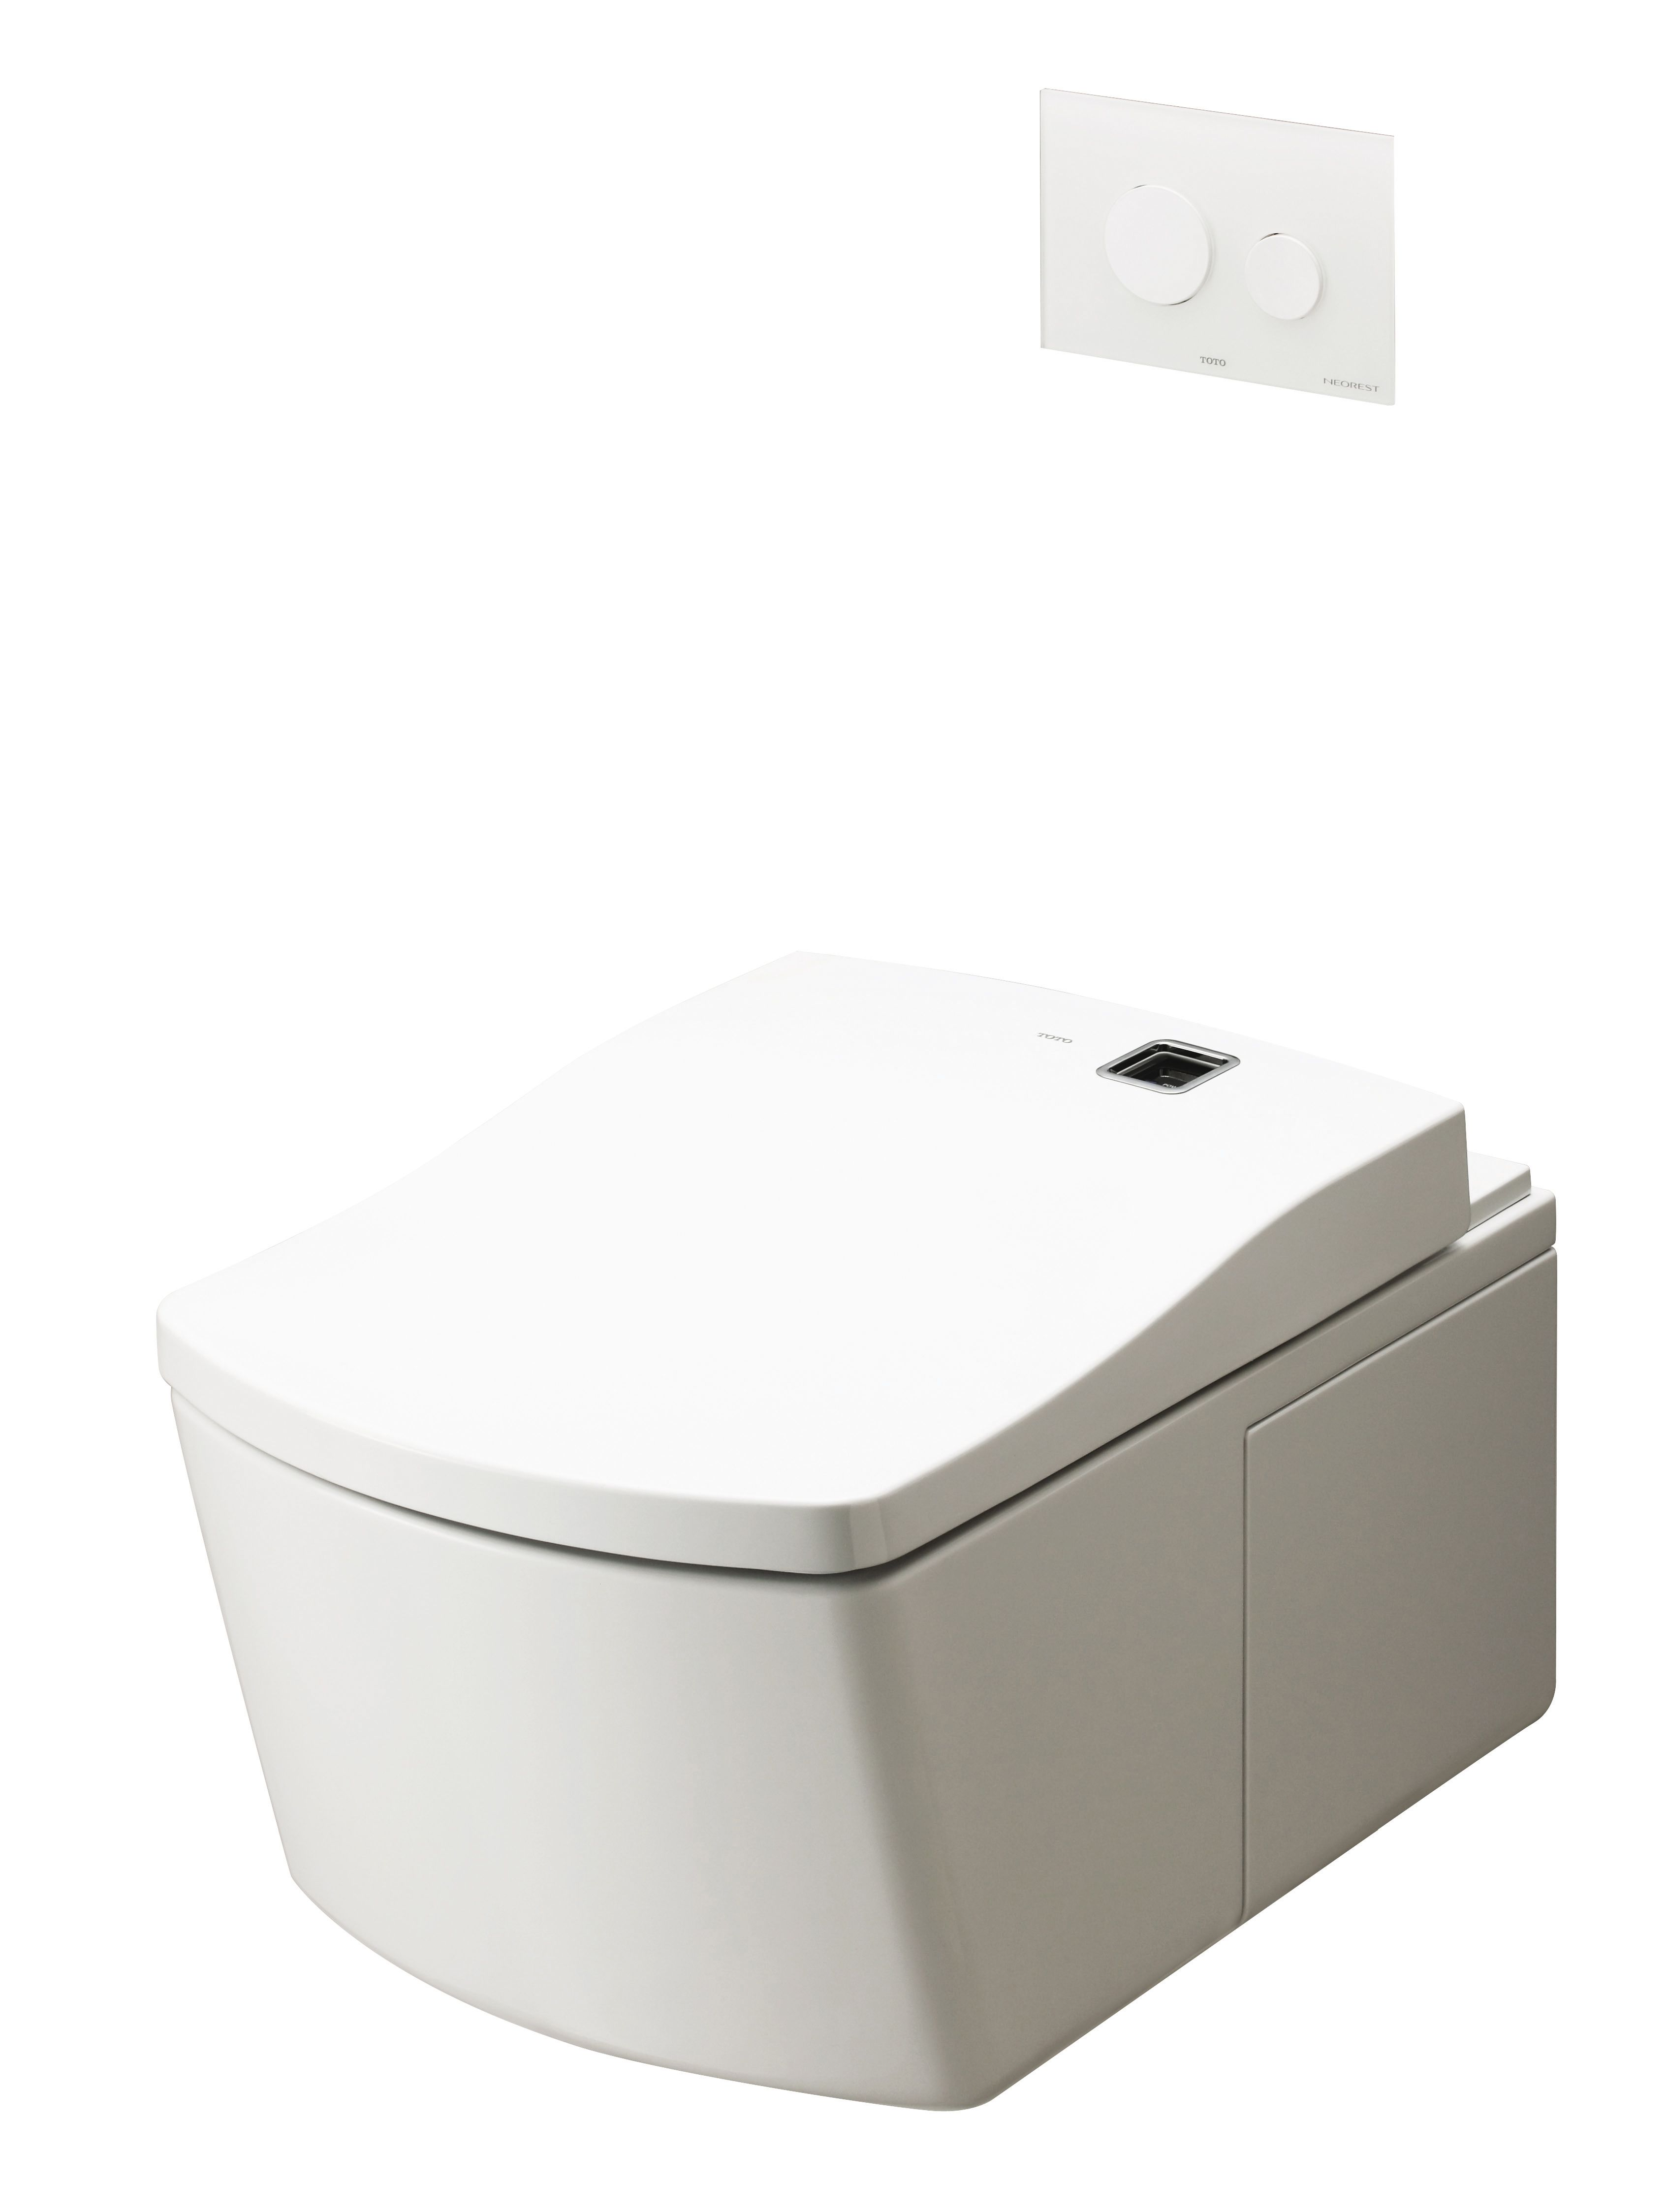 Toto Neorest / LE WC CW998DF toilet and bidet combination